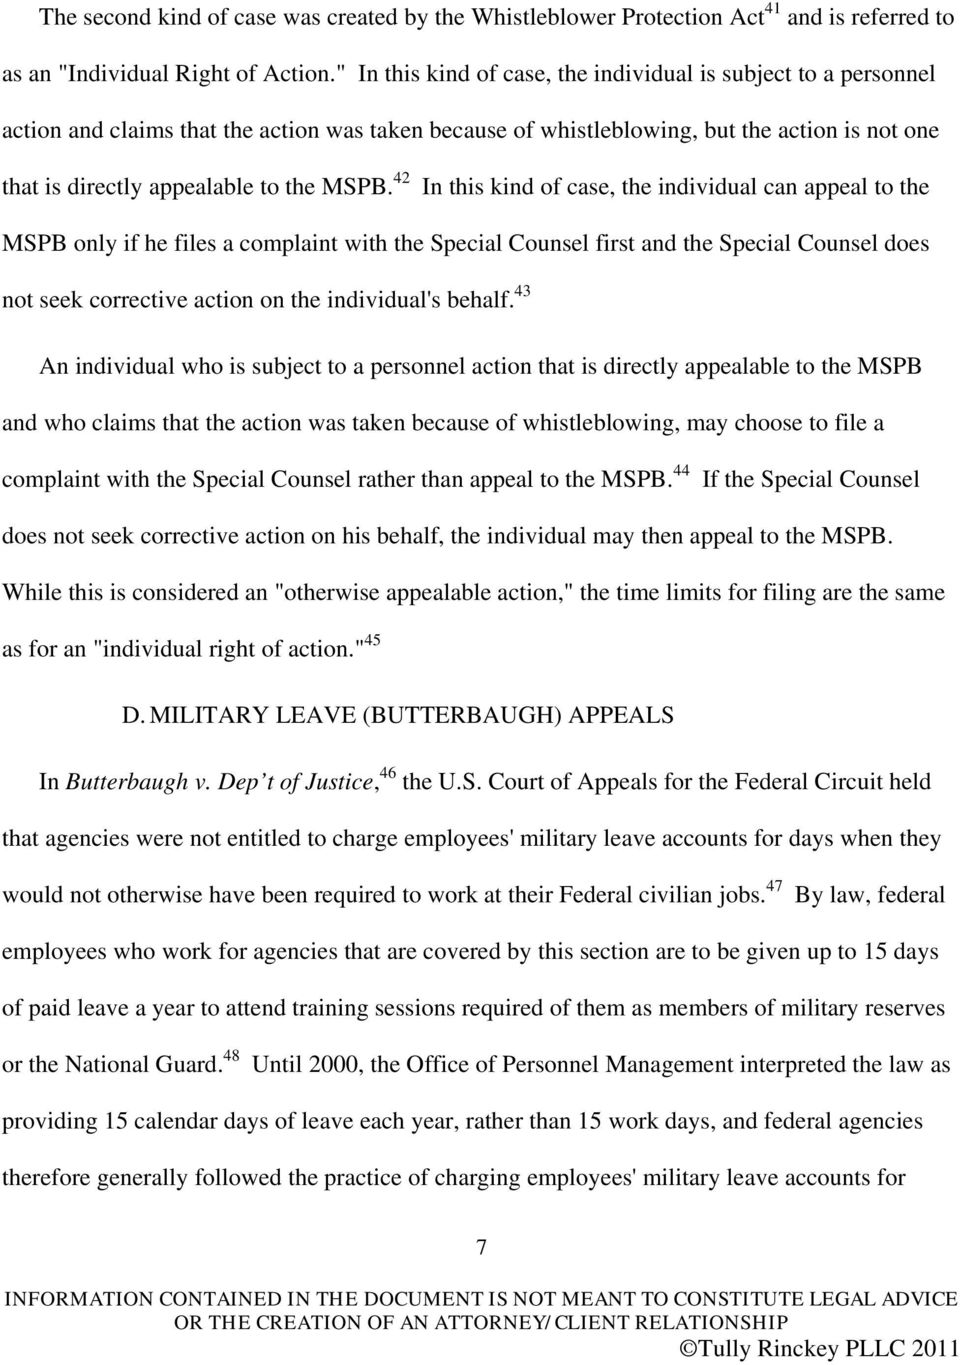 MSPB 42 In This Kind Of Case The Individual Can Appeal To